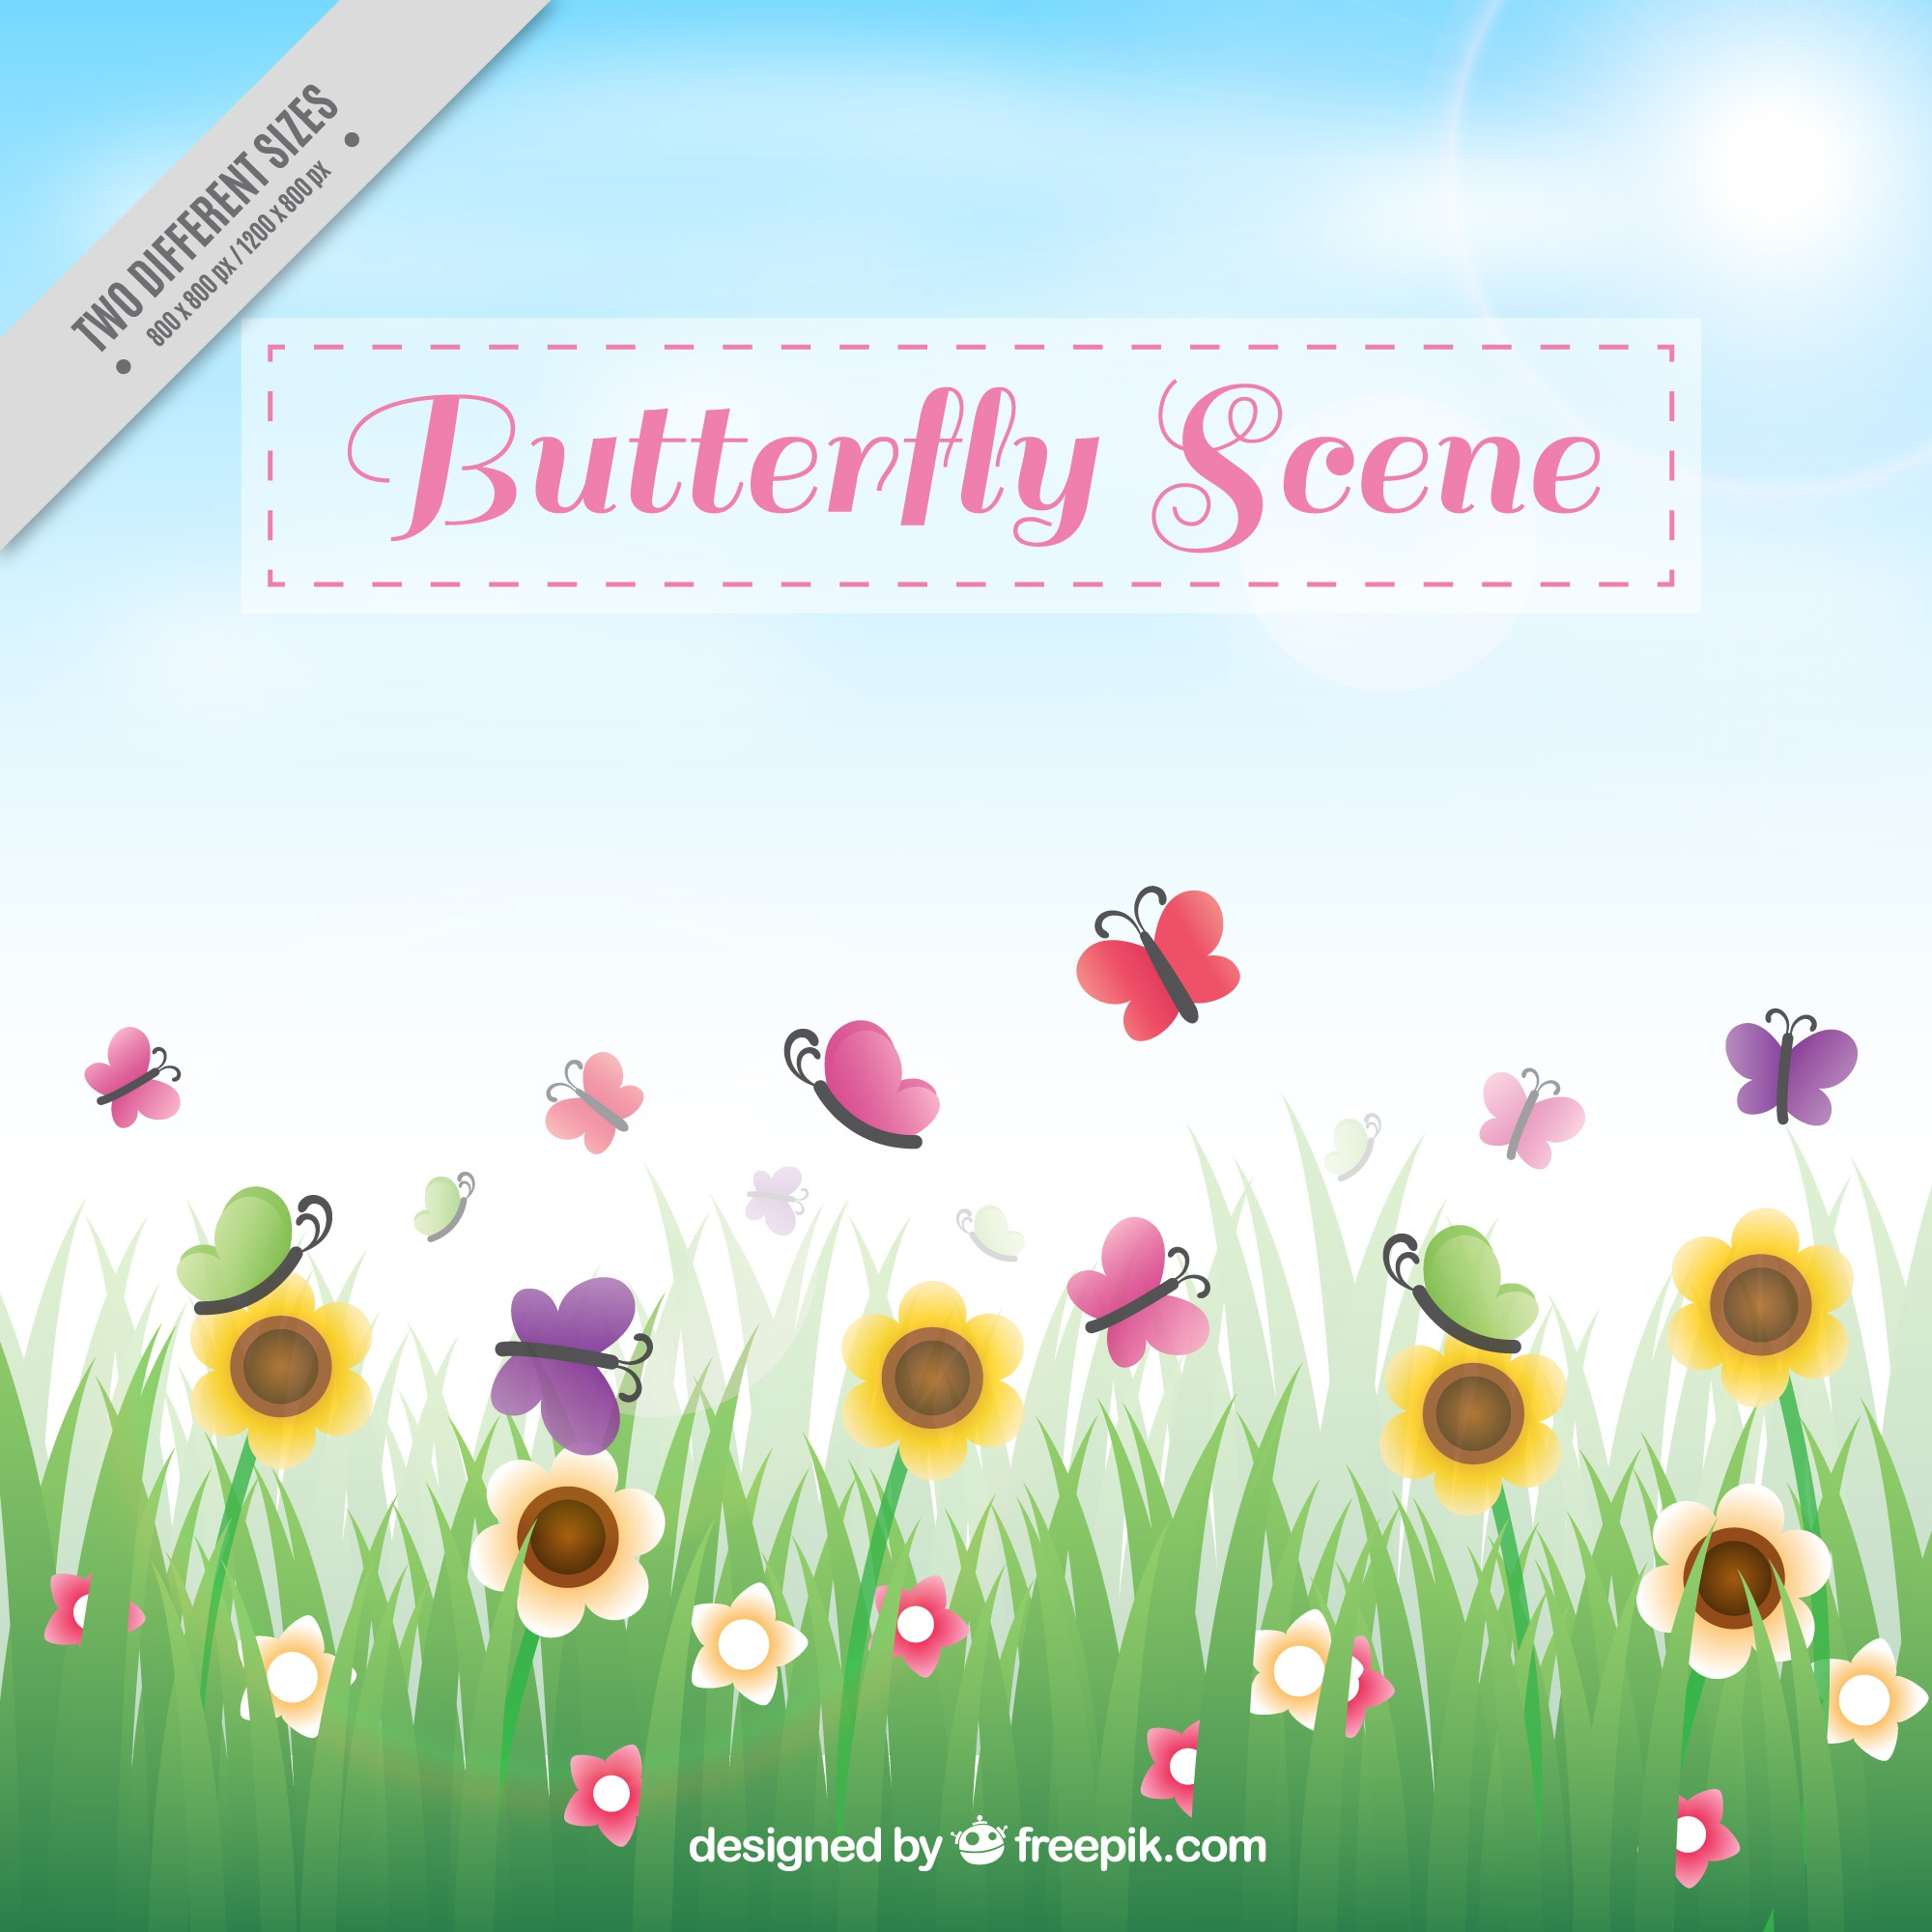 Grass background with flowers and butterflies